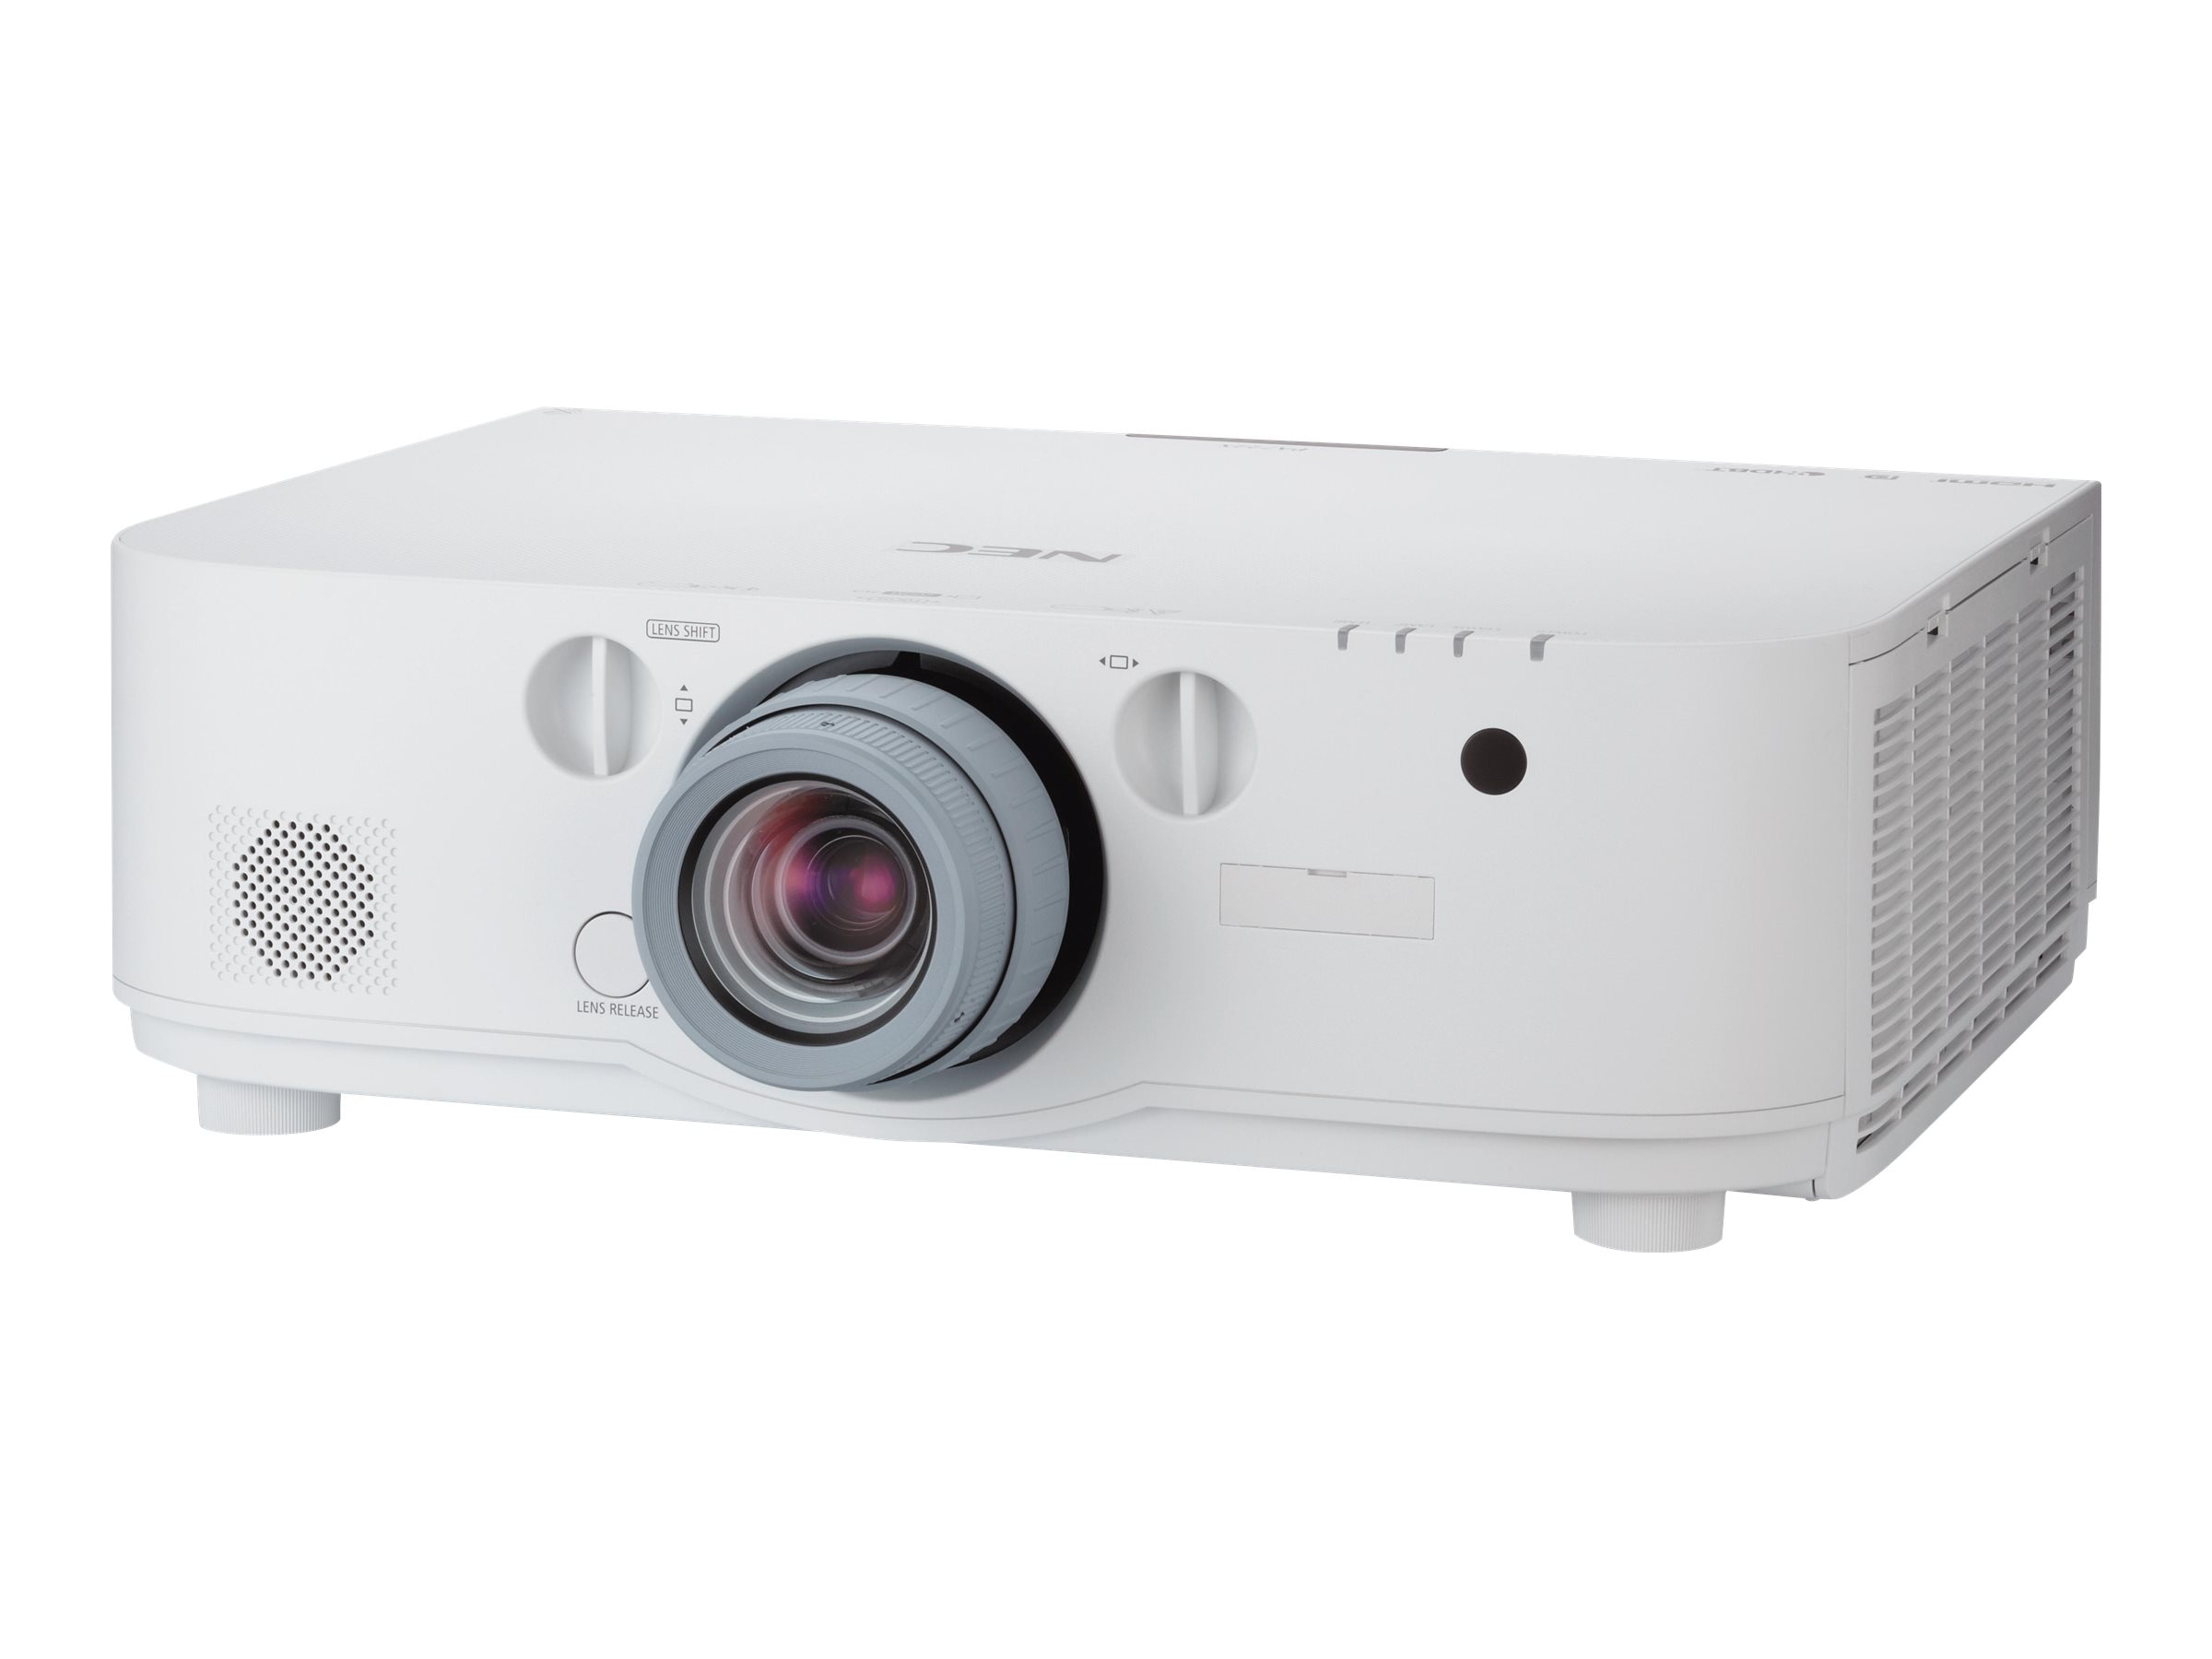 NEC PA571W WUXGA LCD Projector, 5700 Lumens, White with 1.5-3.0:1 Zoom Lens, NP-PA571W-13ZL